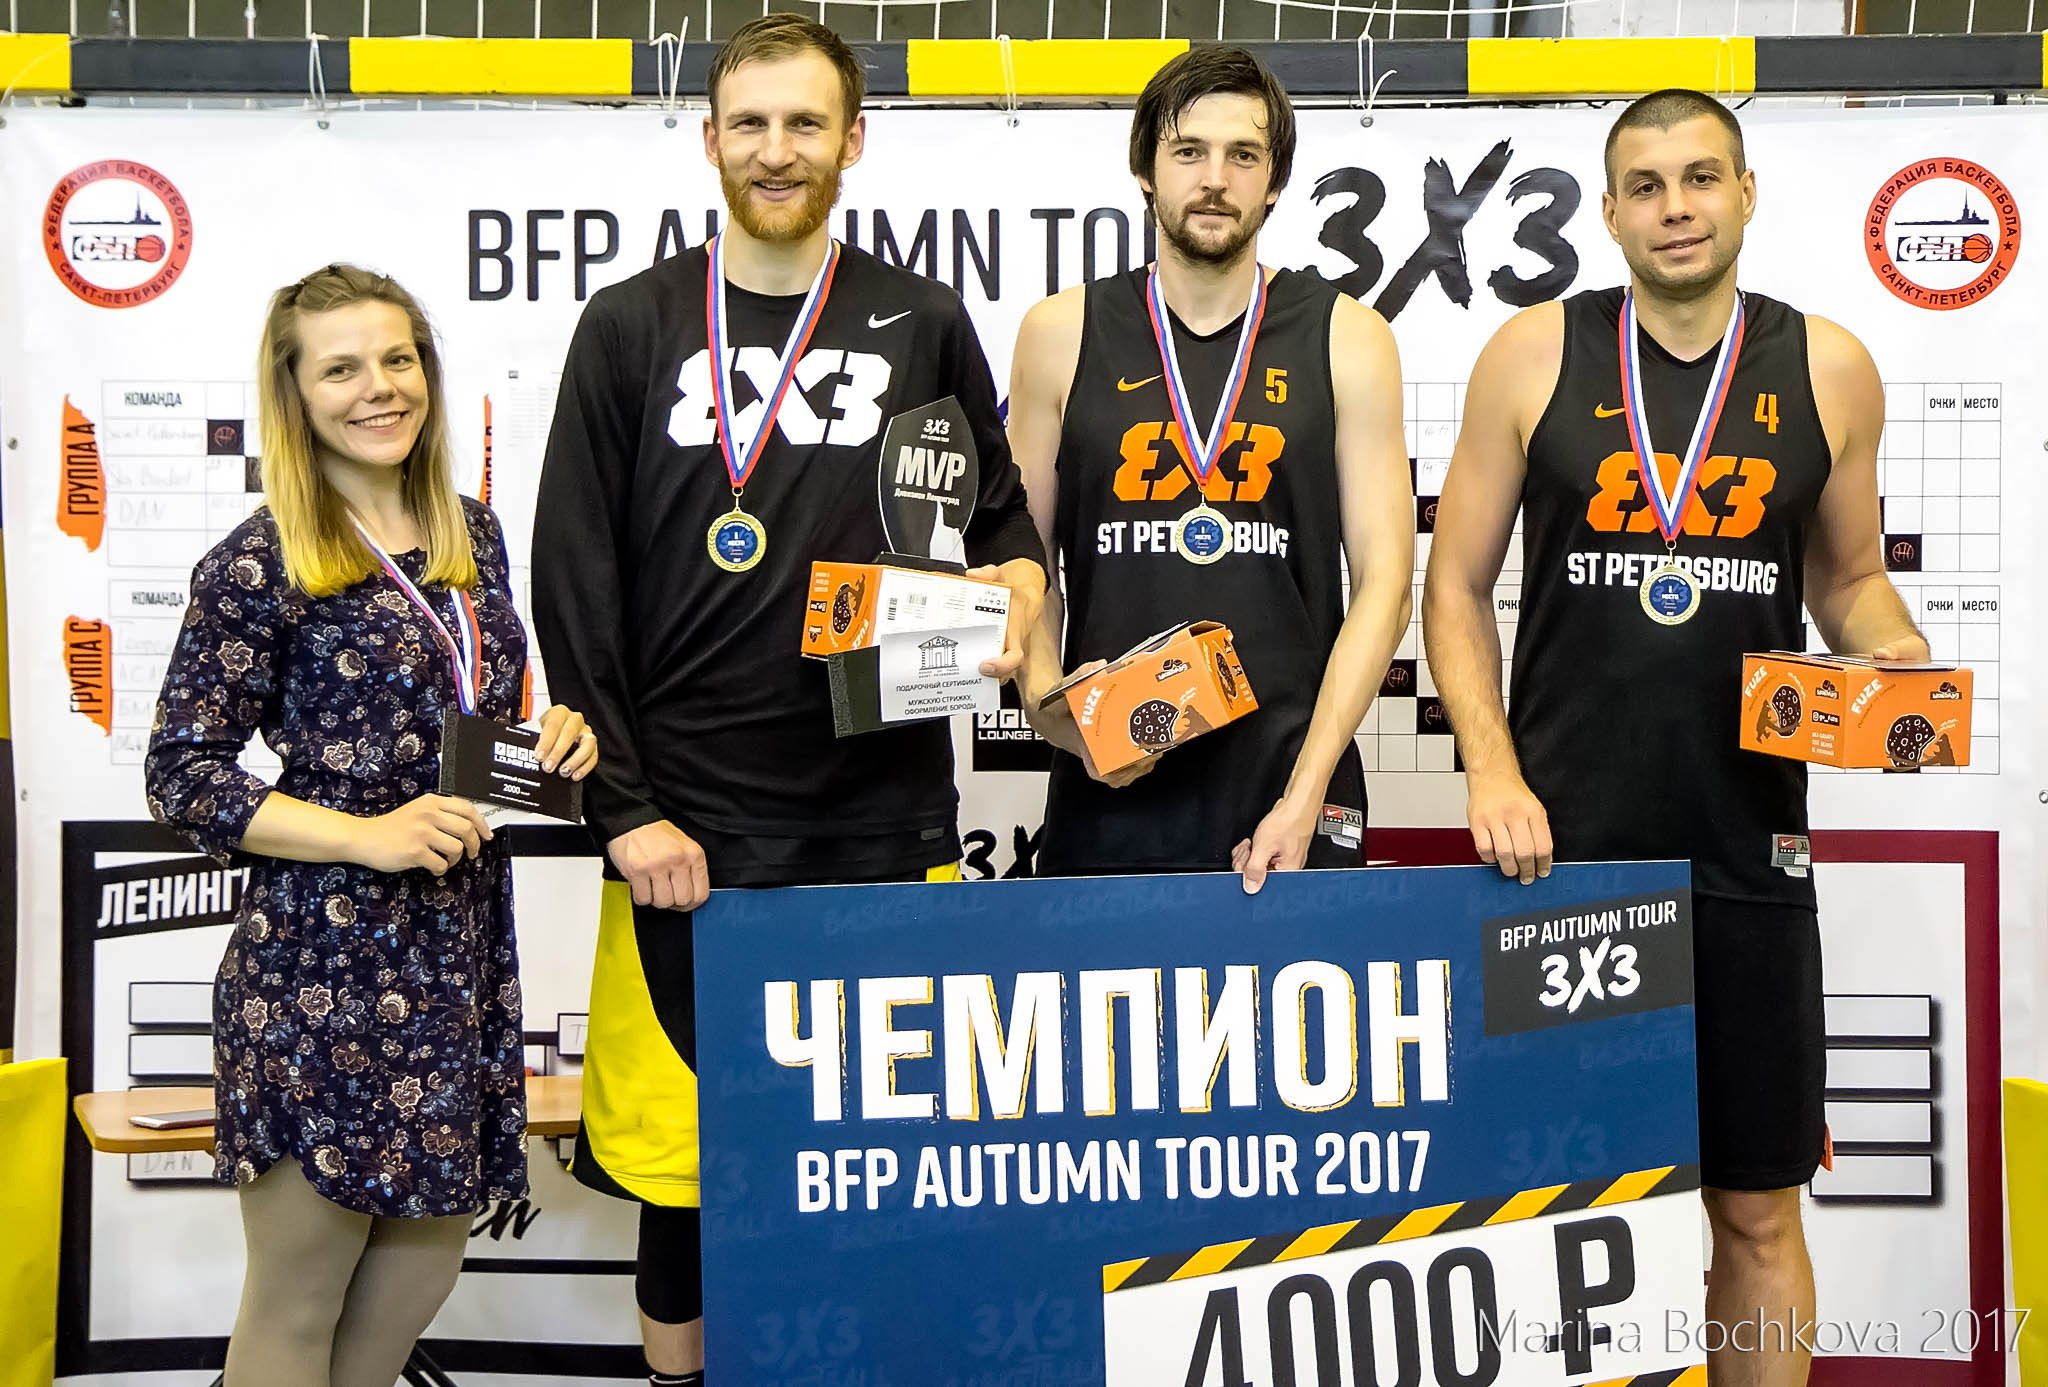 Saint-Petersburg - Чемпион Дивизиона «Ленинград» BFP Autumn Tour 3x3